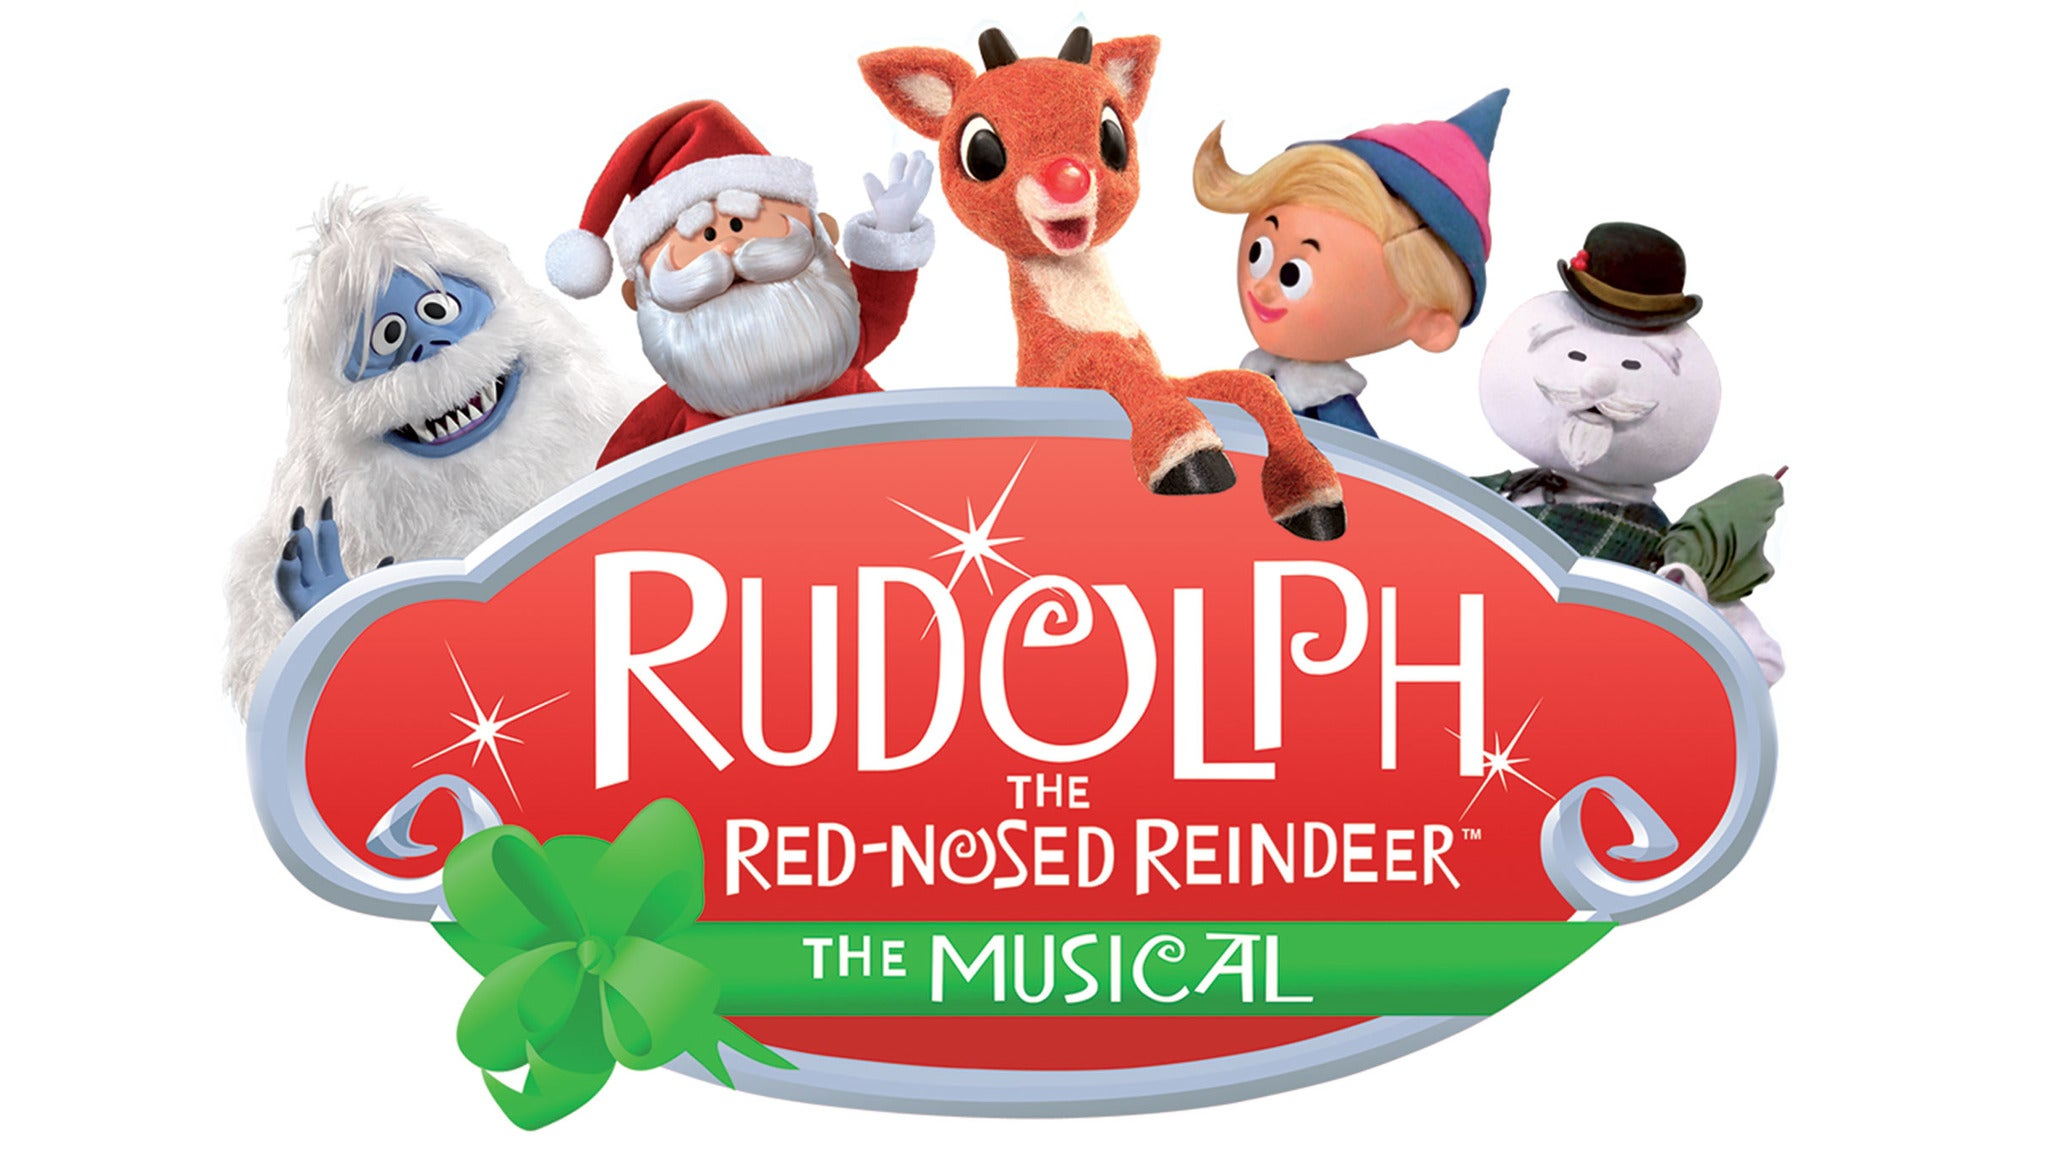 Theater League presents Rudolph The Red-Nosed Reindeer